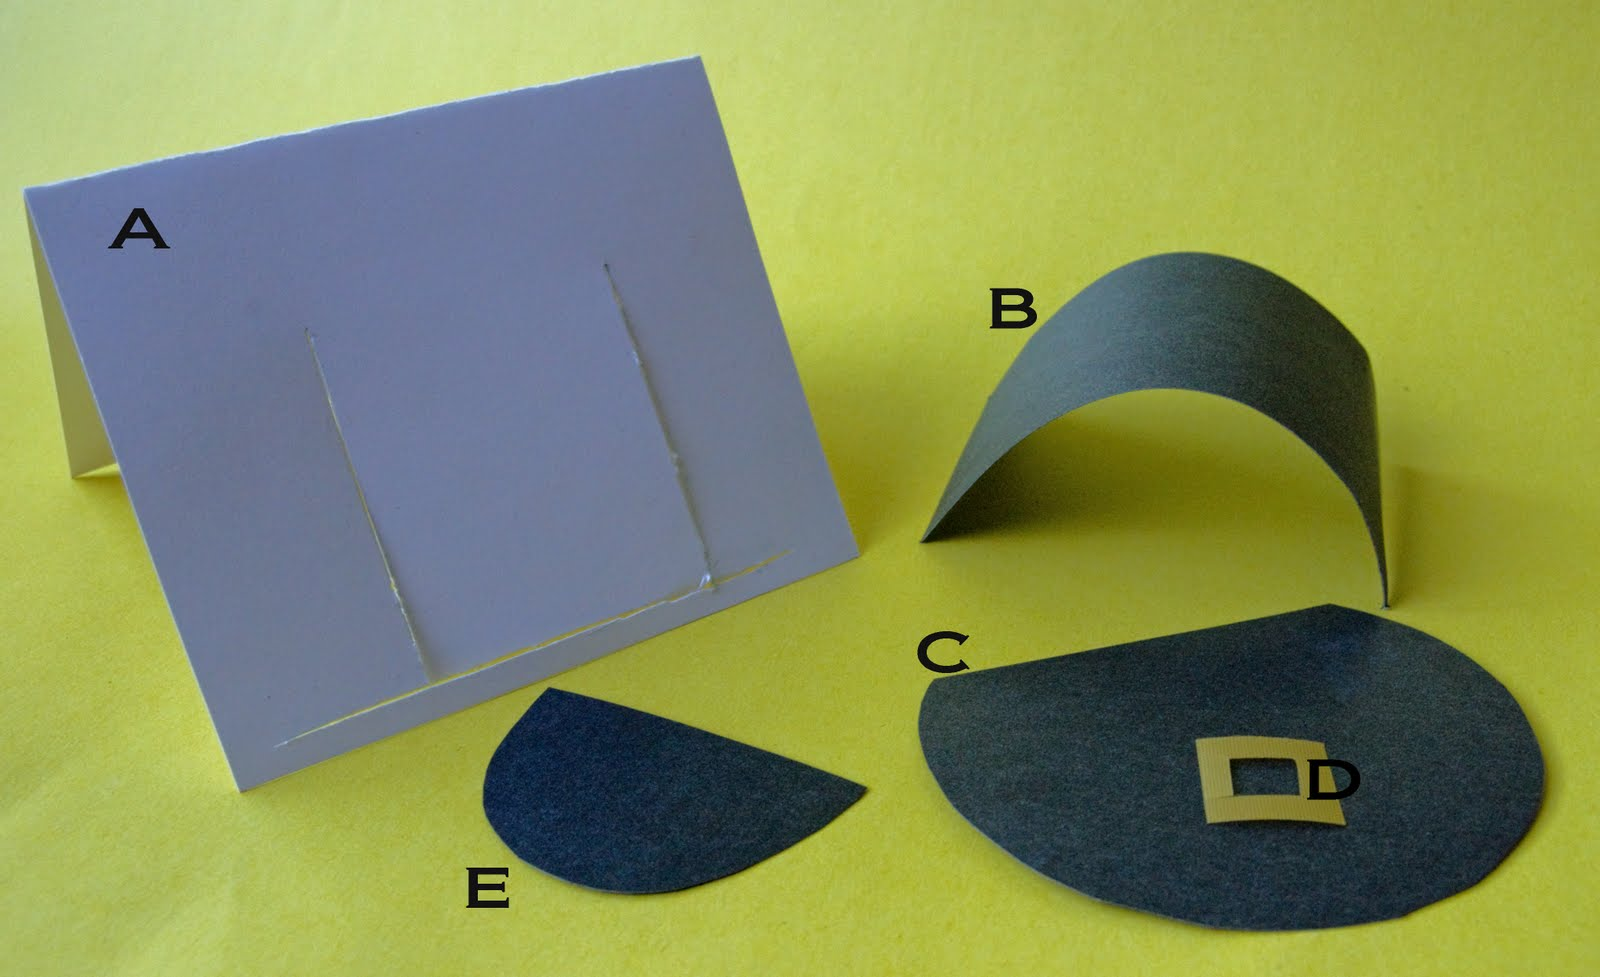 to mind was a pilgrim hat. Here are the steps to make the place card